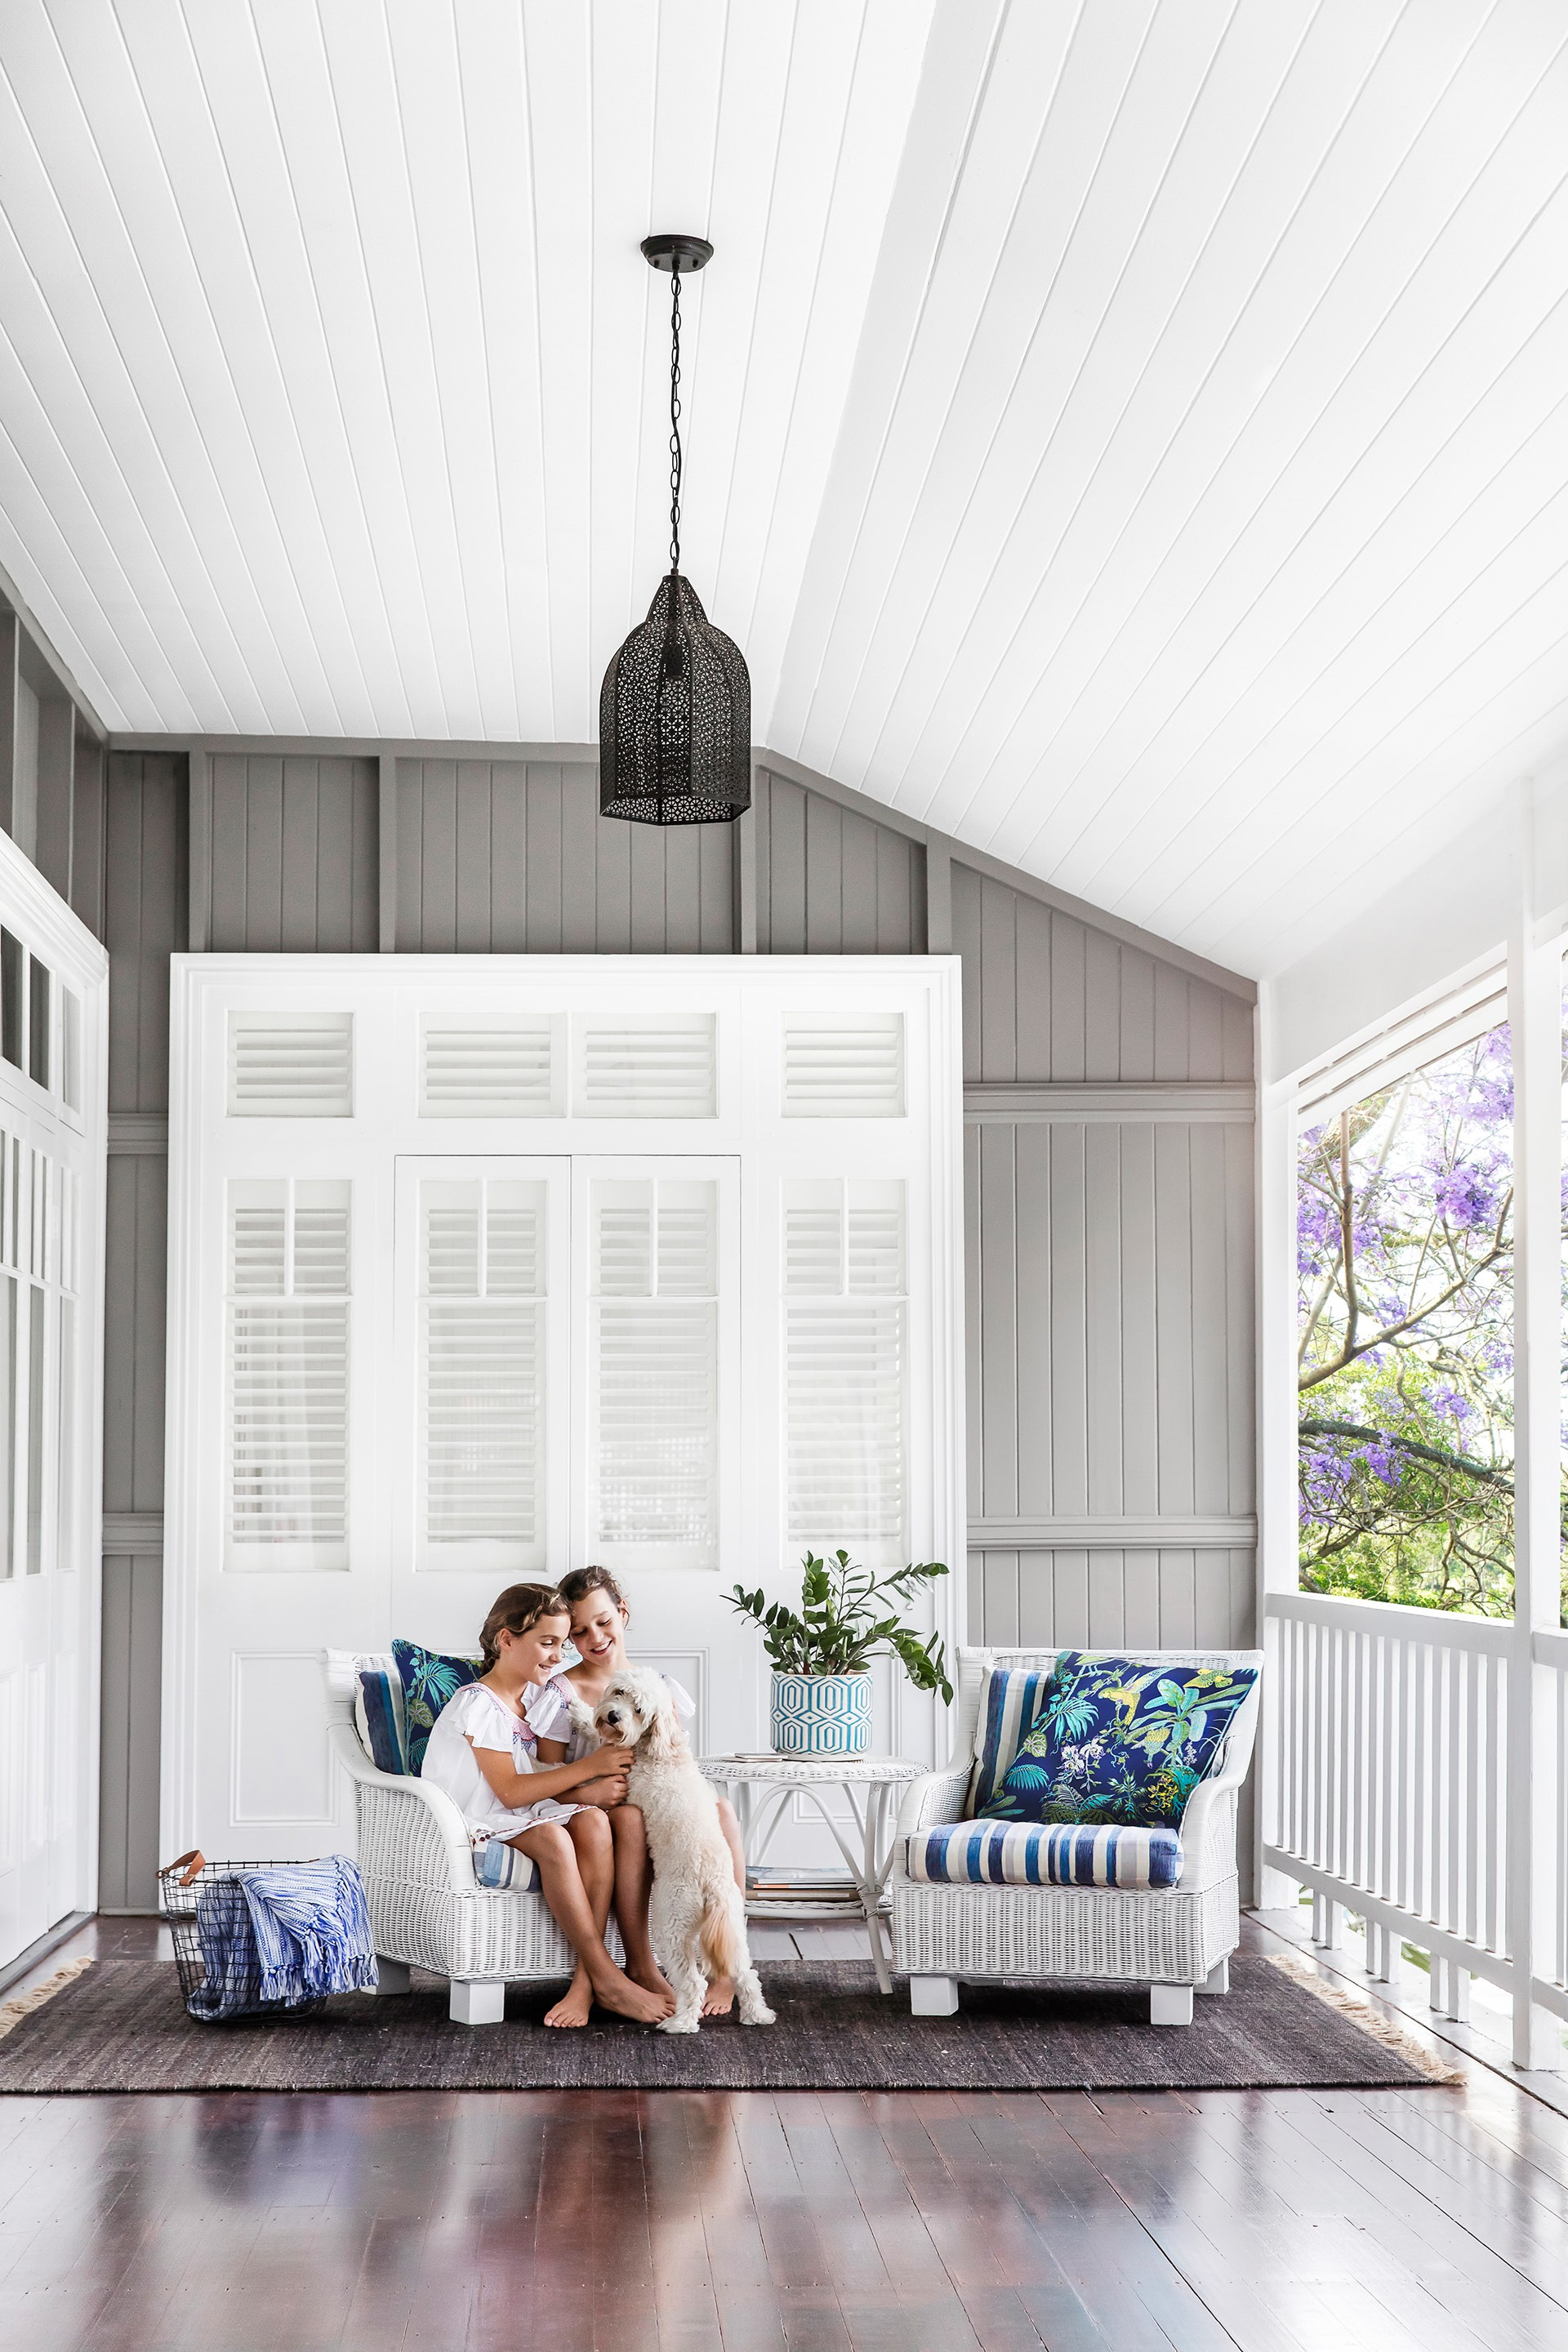 This [1920s Queenslander](http://www.homestolove.com.au/a-refreshed-1920s-queenslander-4363) has been refreshed with Hamptons style and a laidback coastal vibe while retaining its original charm. Photo: Maree Homer